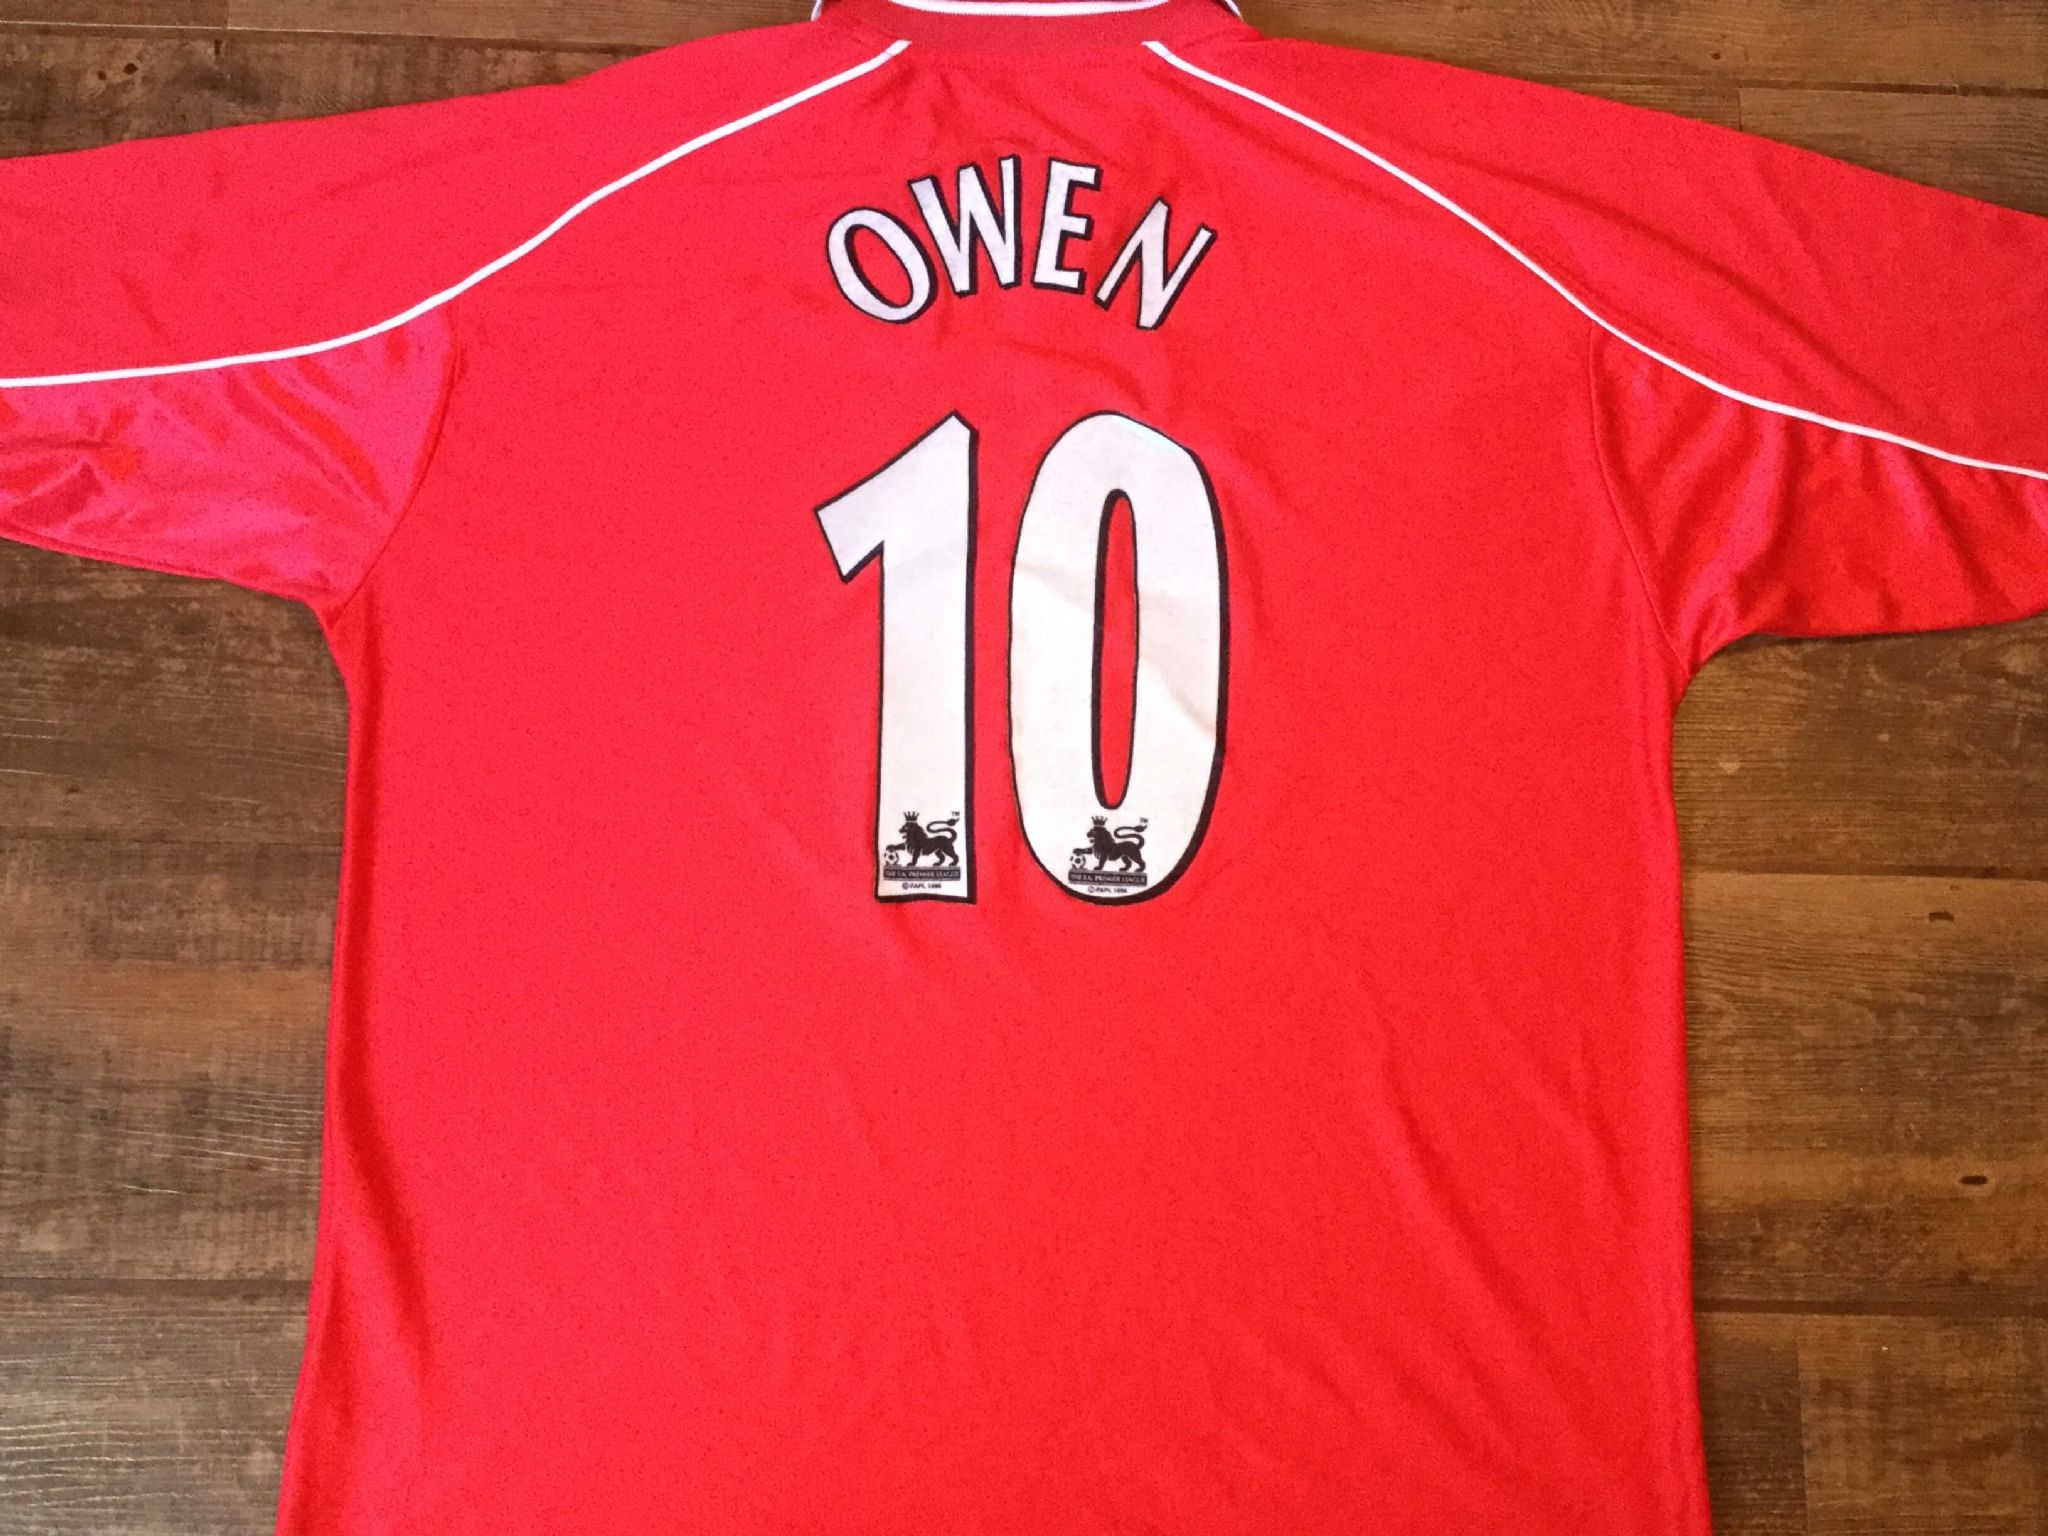 best website 41a21 a6f8b Global Classic Football Shirts | 1994 Liverpool Old Vintage ...